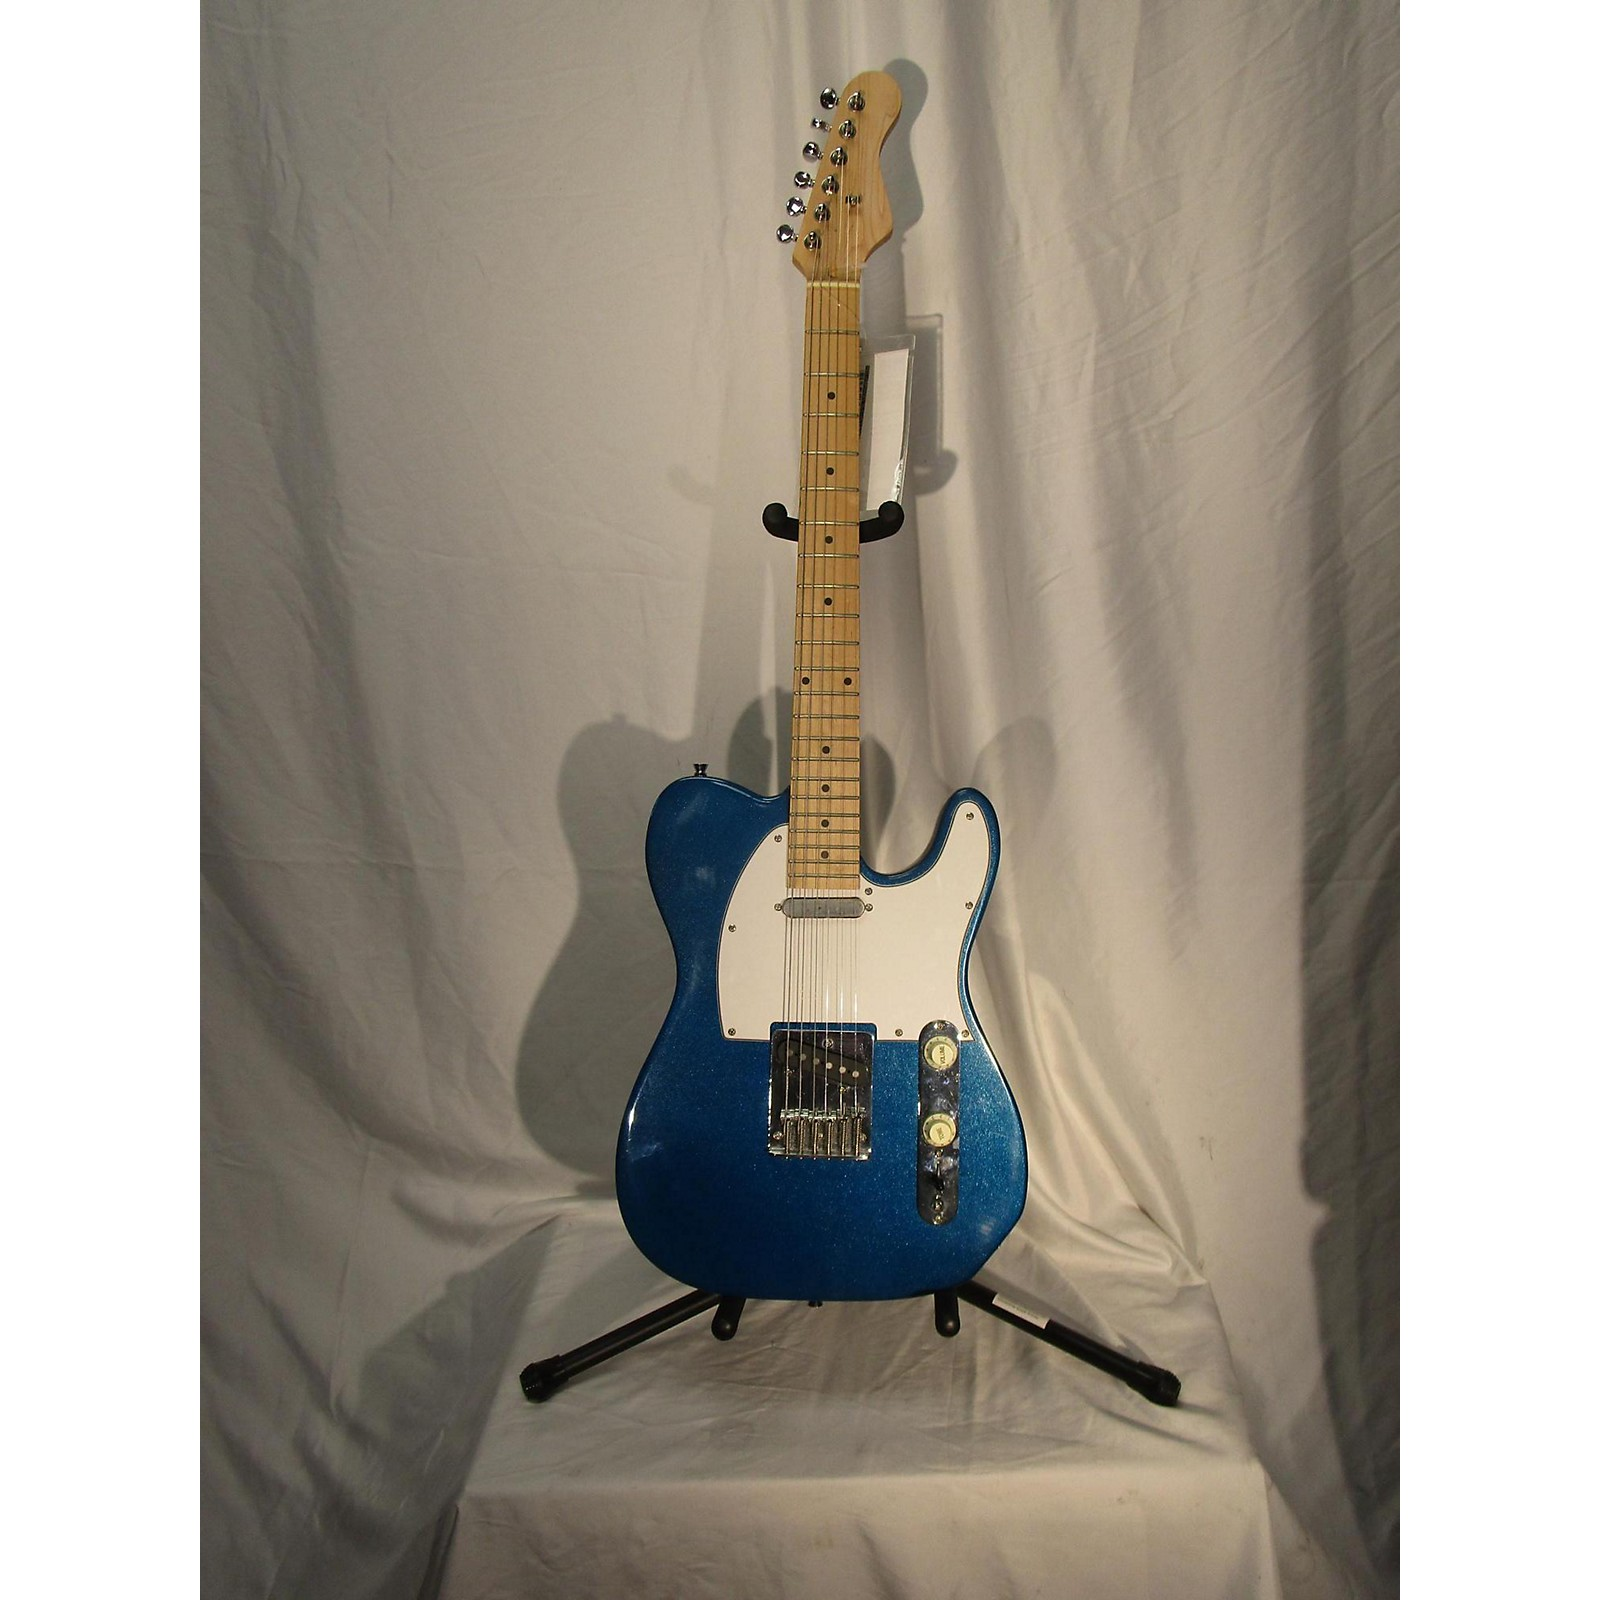 In Store Used Used Unbranded Telecaster Metallic Blue Solid Body Electric Guitar